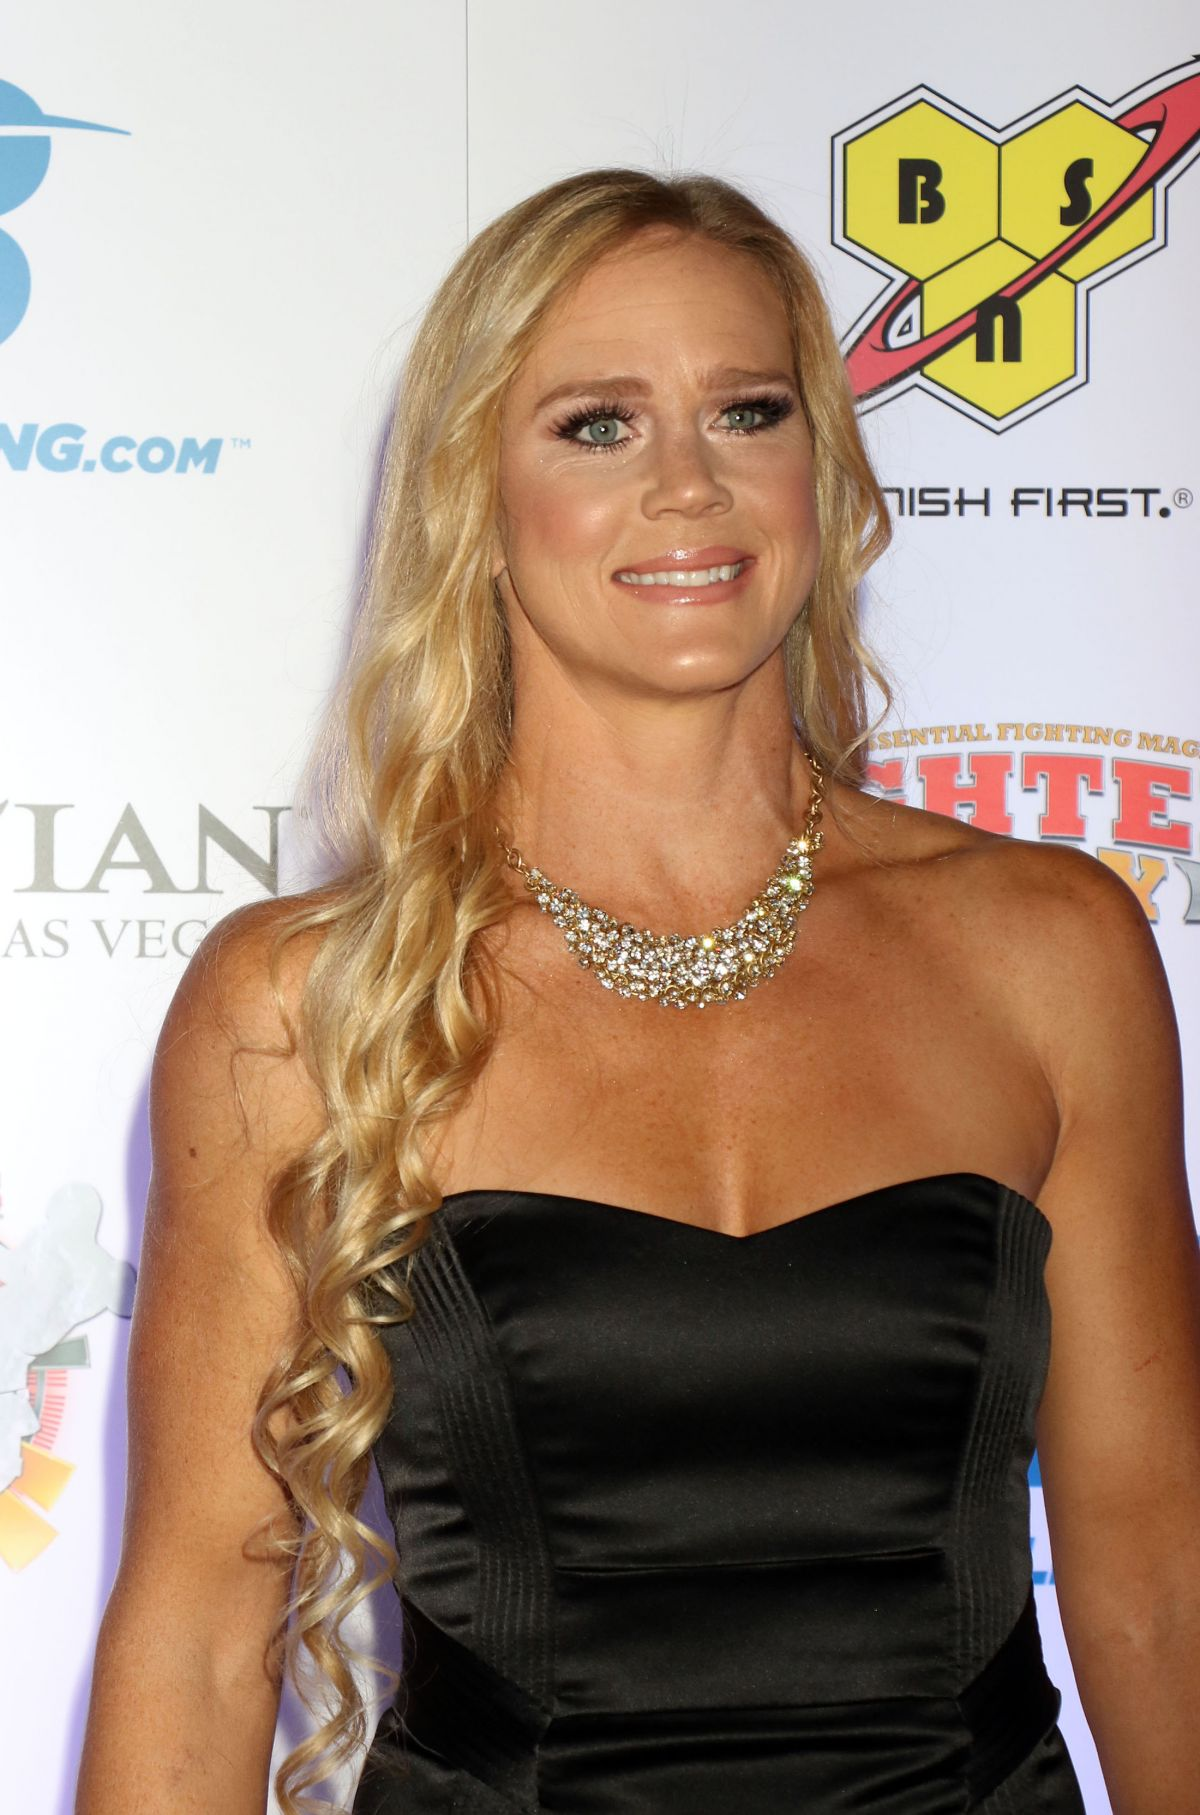 Holly Holm At 8th Annu...